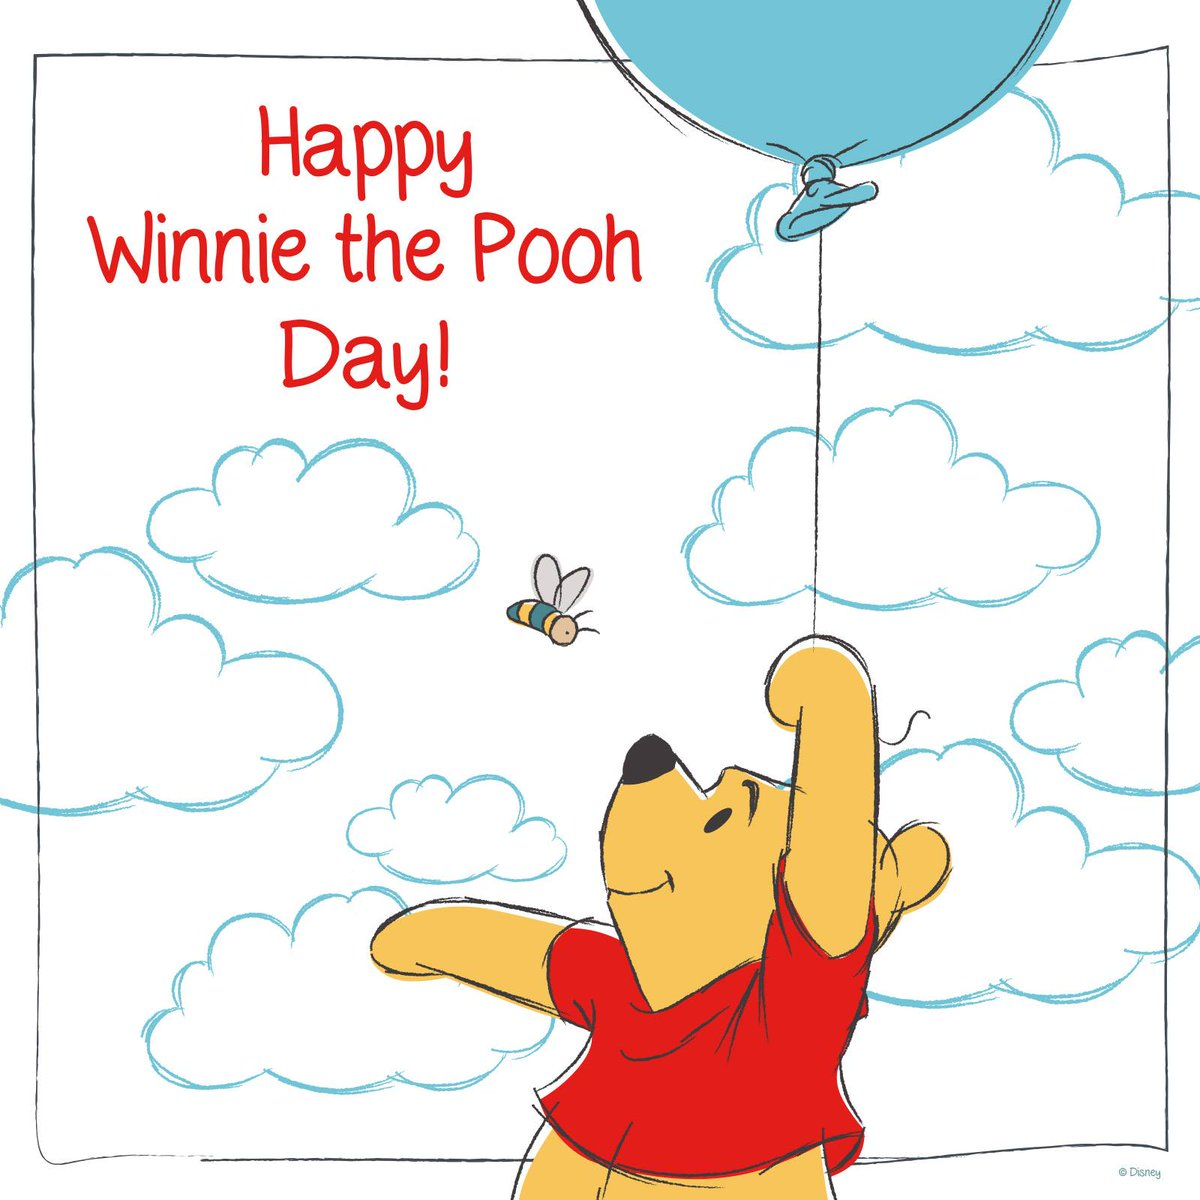 Happy #WinniethePoohDay to our silly ol' bear! https://t.co/9oO3RmxPCW